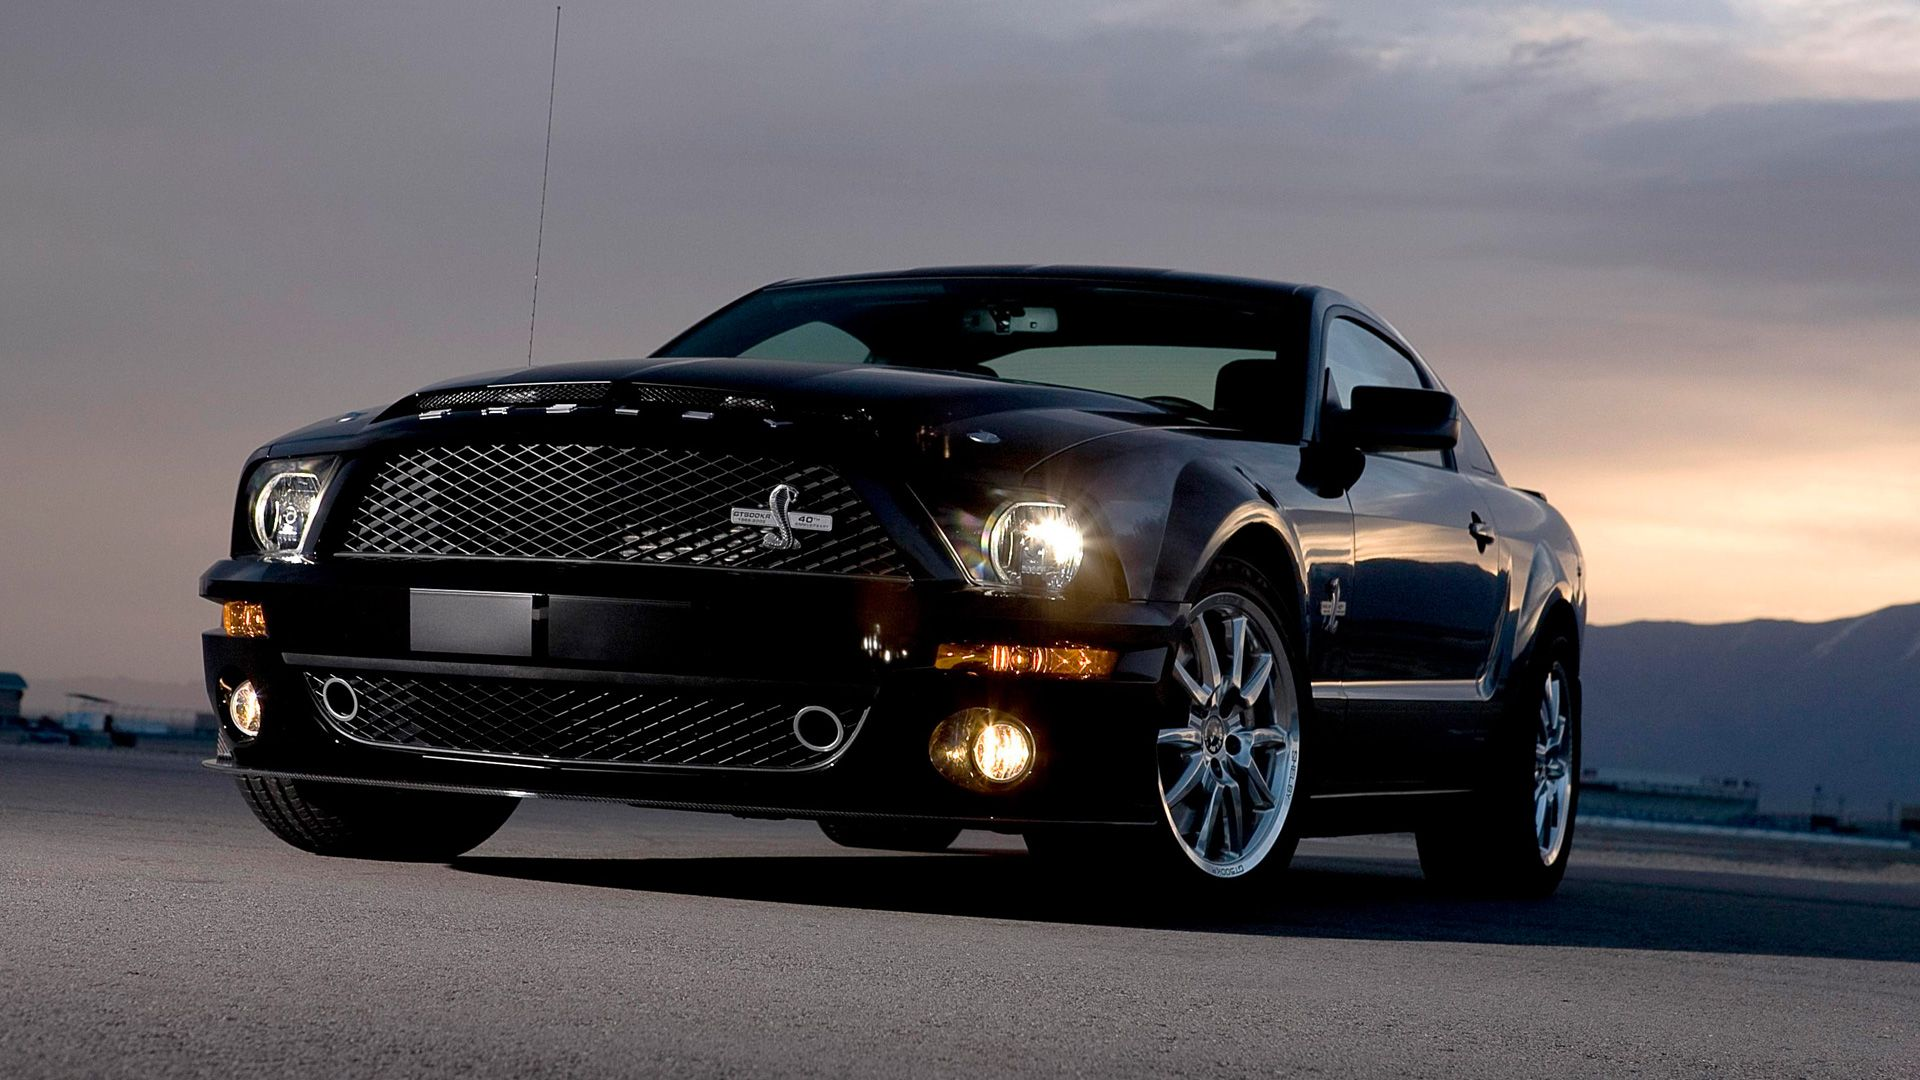 Ford Mustang Shelby Cobra Gt Hd Wallpapers Backgrounds Wallpapers